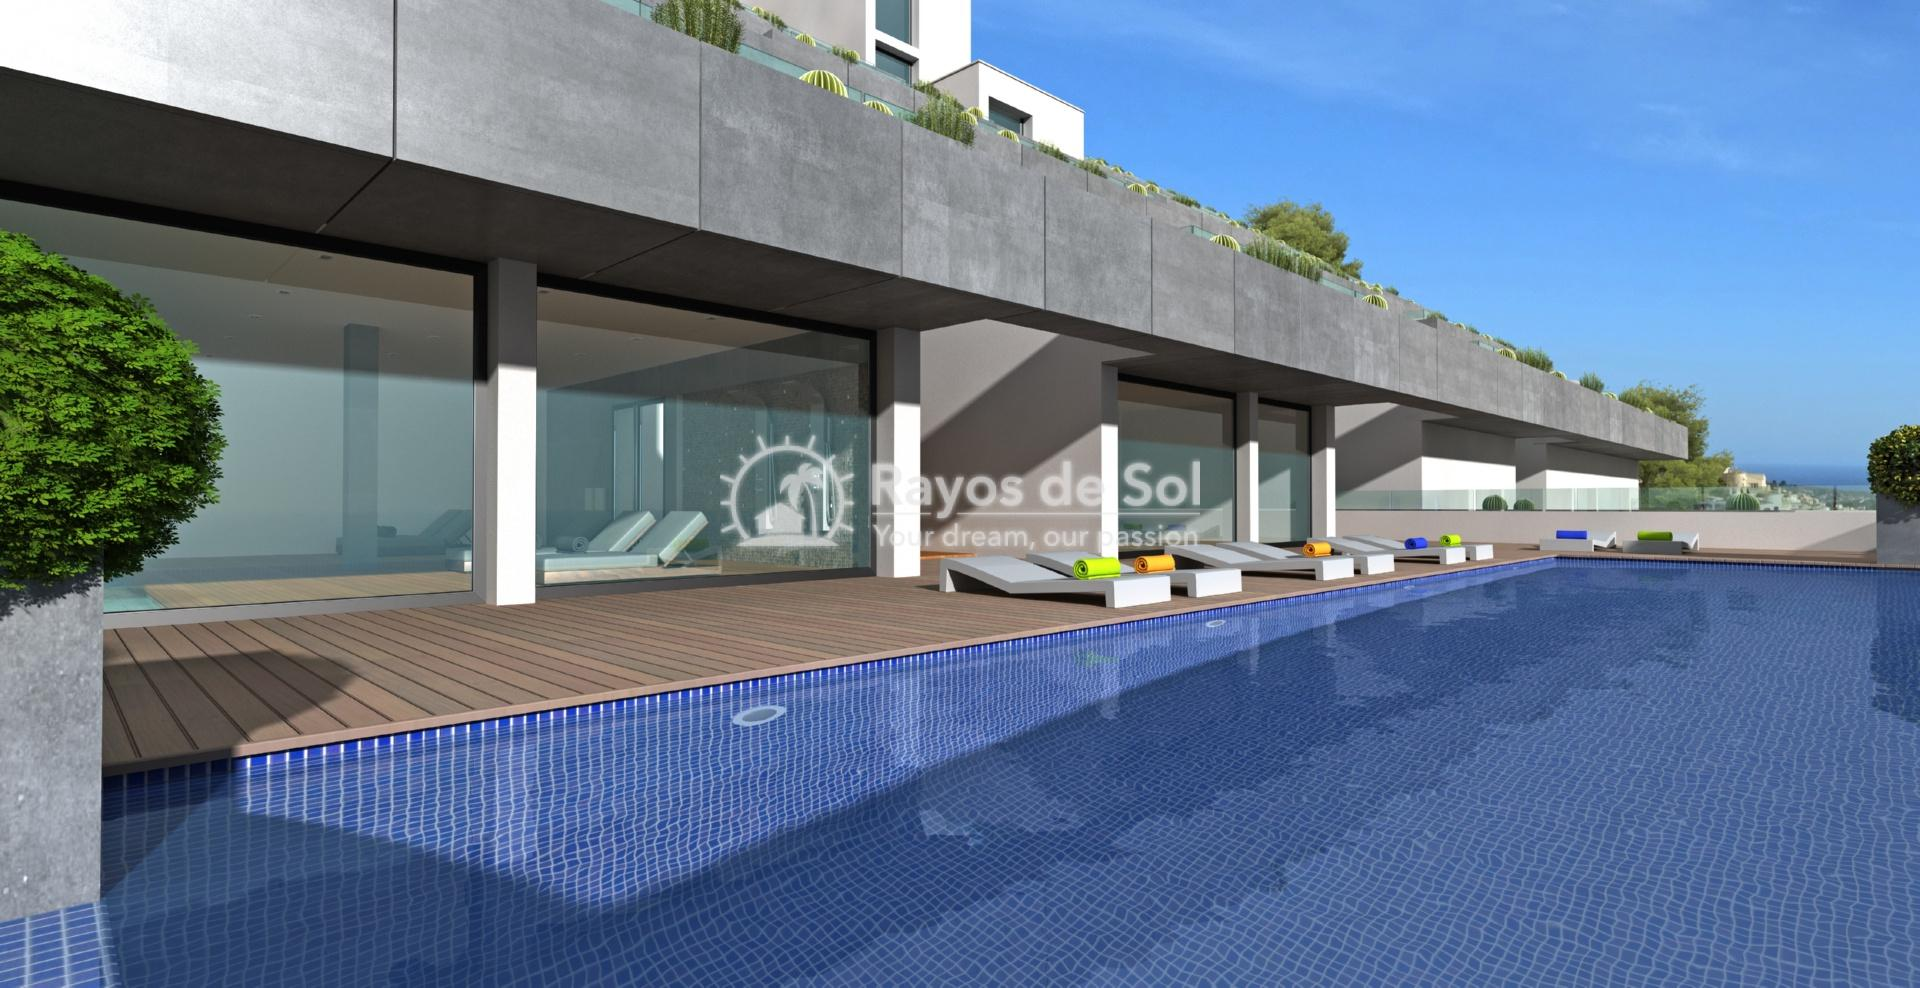 Exclusive apartment in Cumbre del Sol, Benitachell, Costa Blanca (BEVABI2-2) - 15